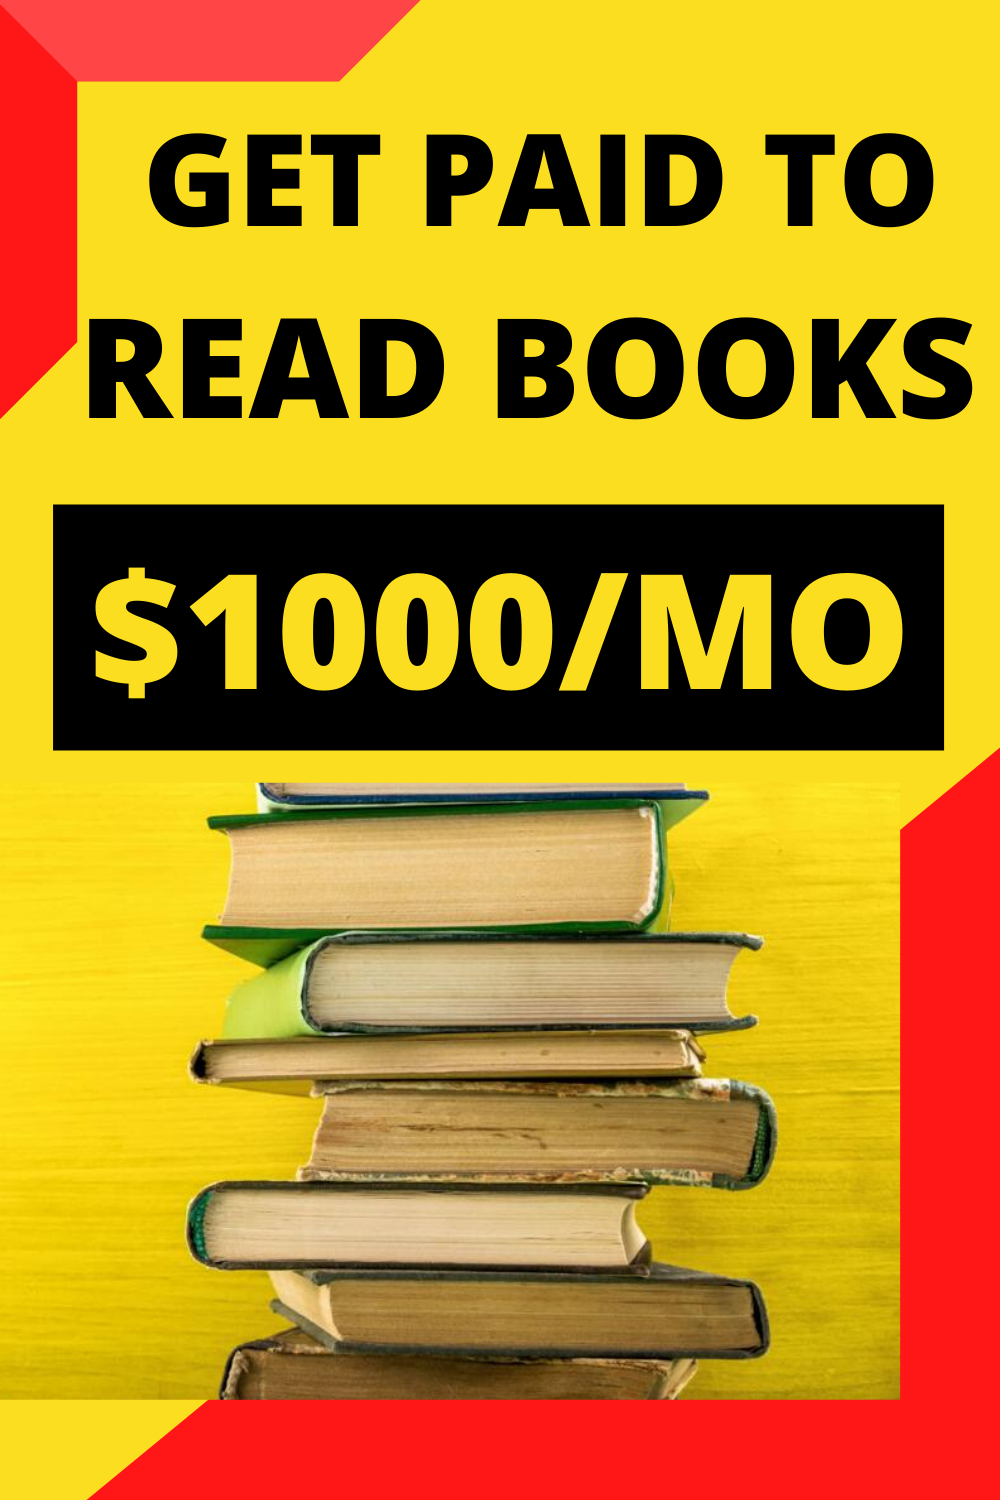 Get Paid To Read Books Now Book Blogging Pays Money Typing Jobs Money Book How To Get Money